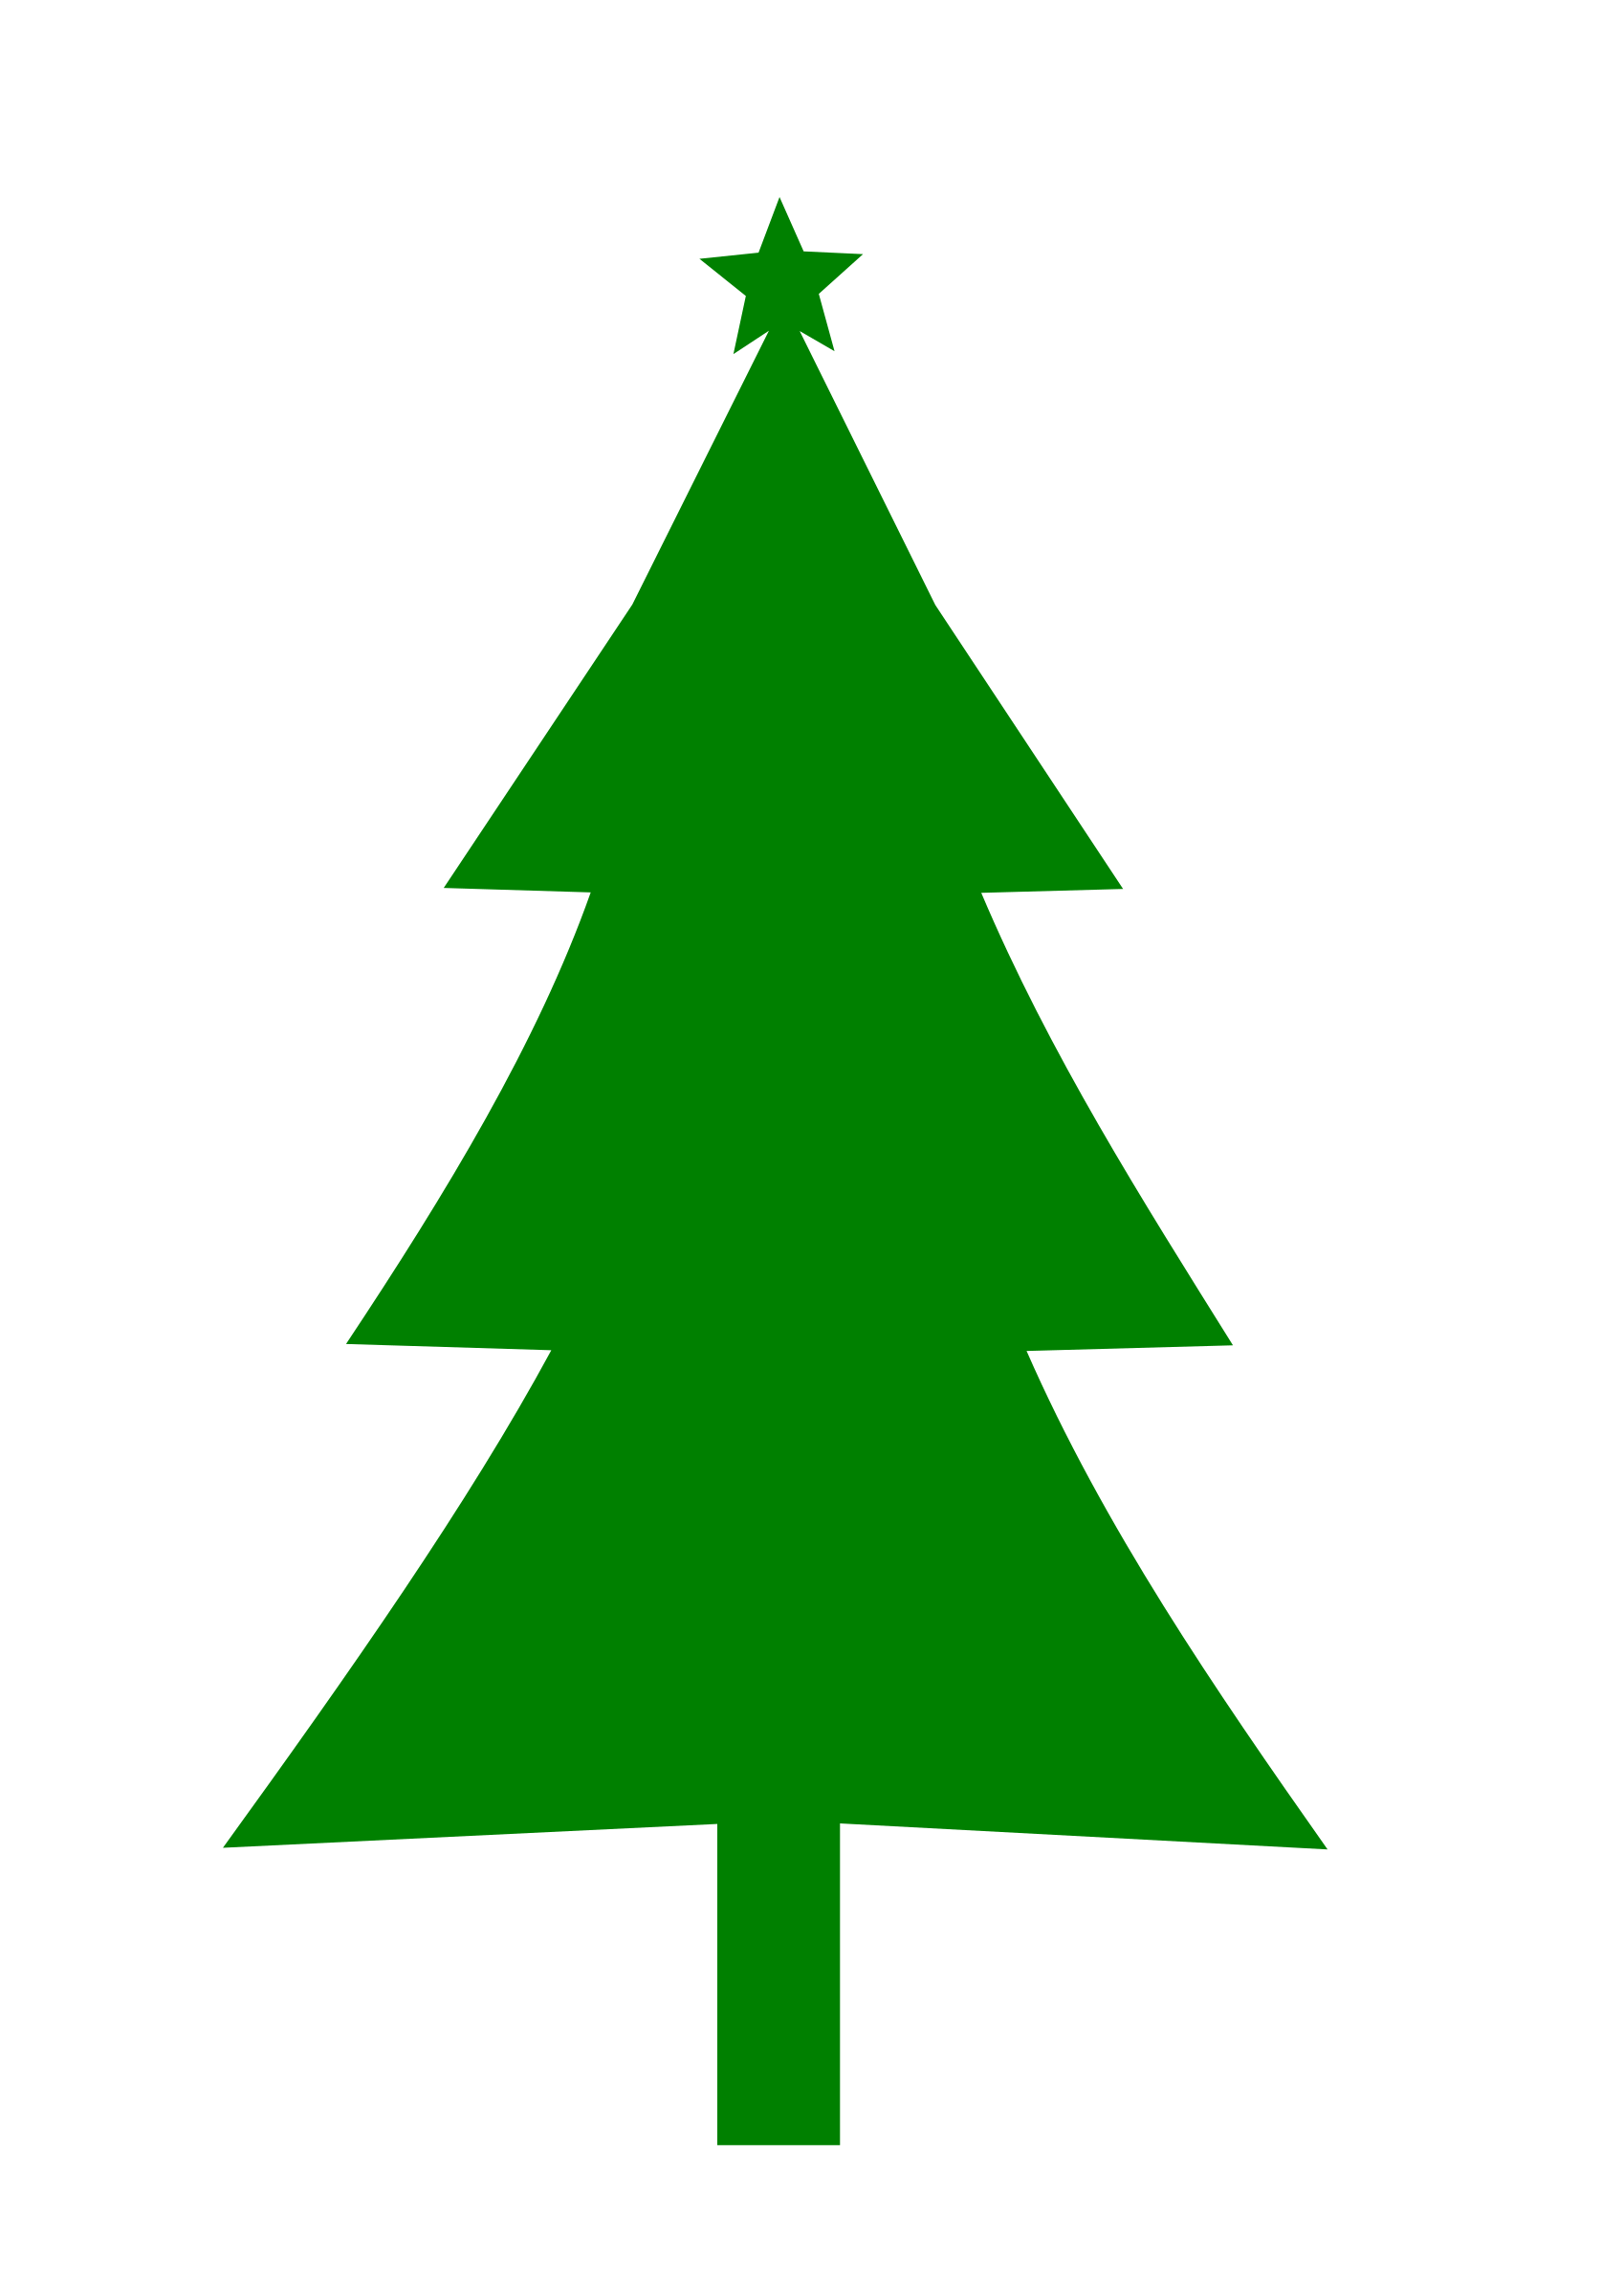 Triangle christmas tree clipart black and white picture royalty free Christmas Trees Silhouette at GetDrawings.com | Free for personal ... picture royalty free